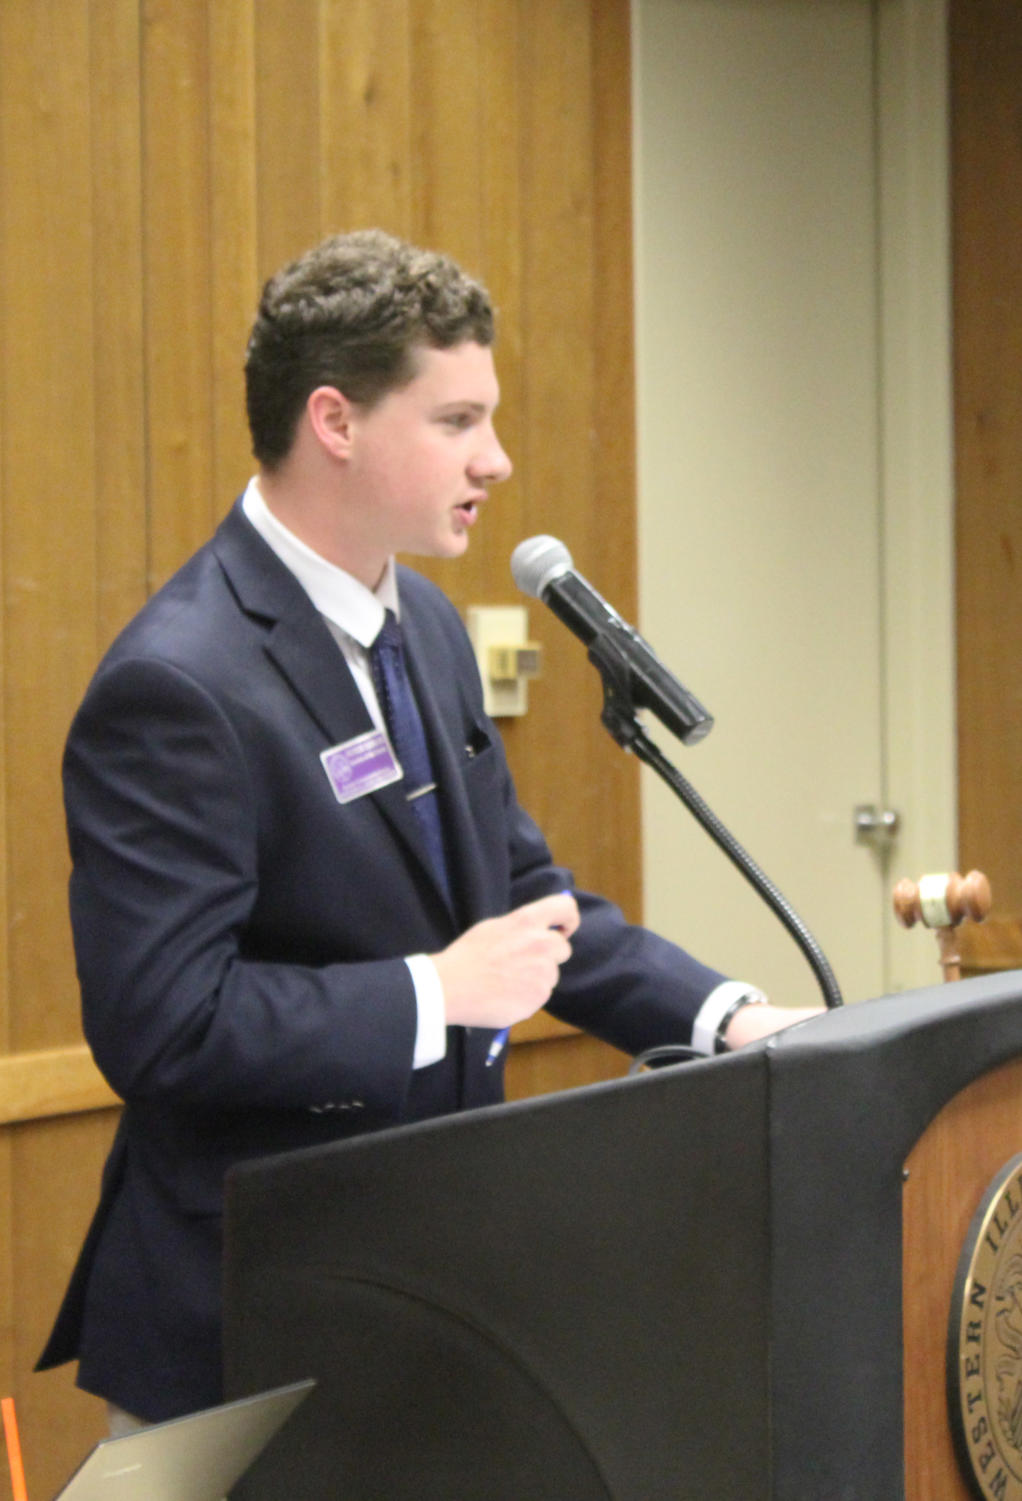 The Student Government Association listens to a presentation on fee structures and discusses legislation pertaining to funding for Western Illinois University at Tuesday's meeting.